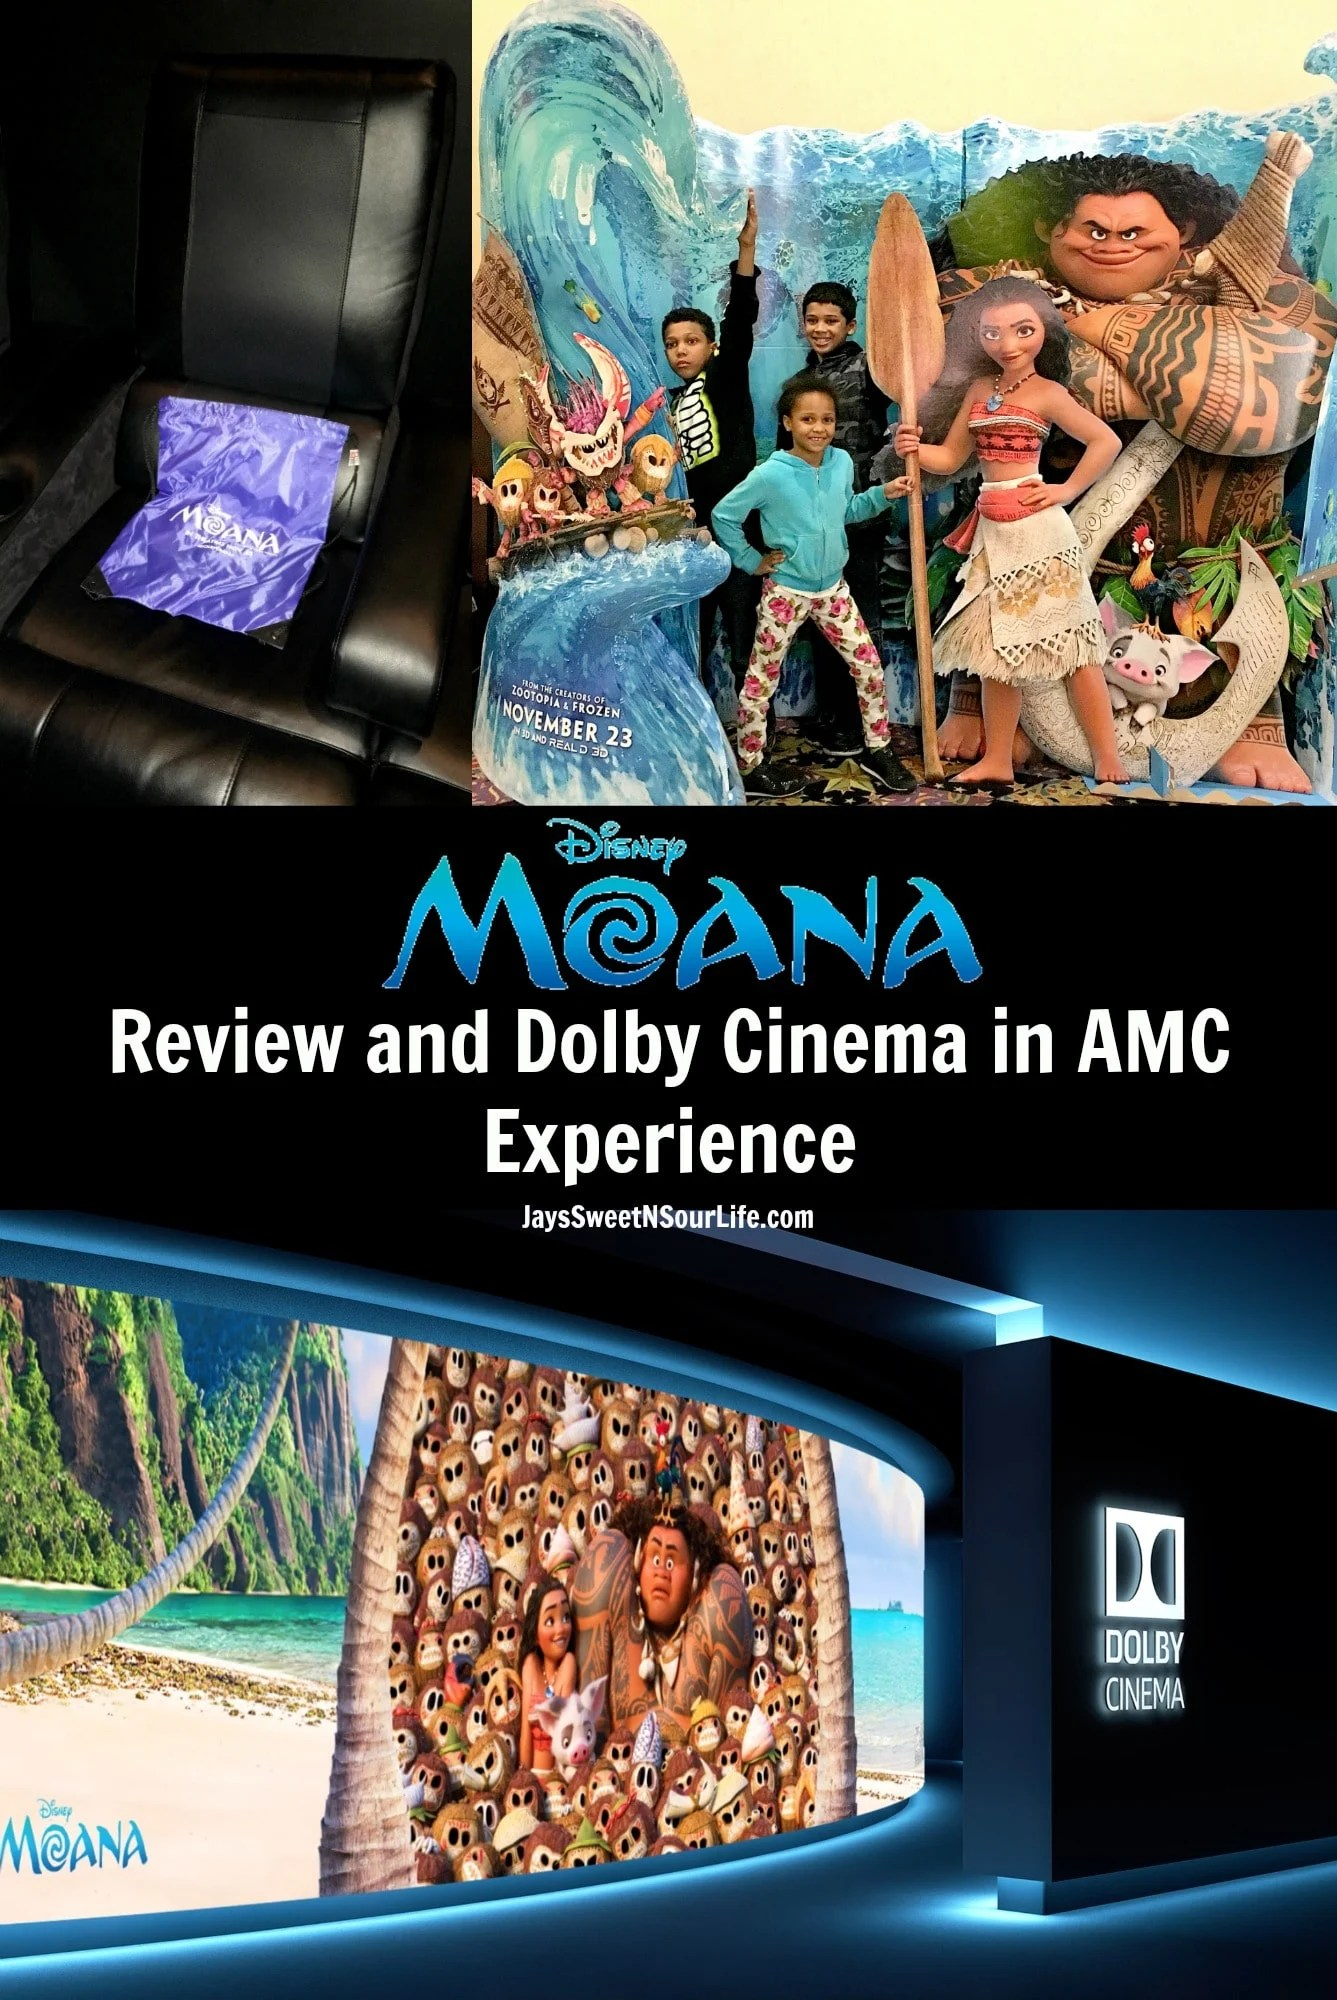 Willowbrook Amc 24 Disney39s Moana Movie Review And Dolby Cinema In Amc Experience